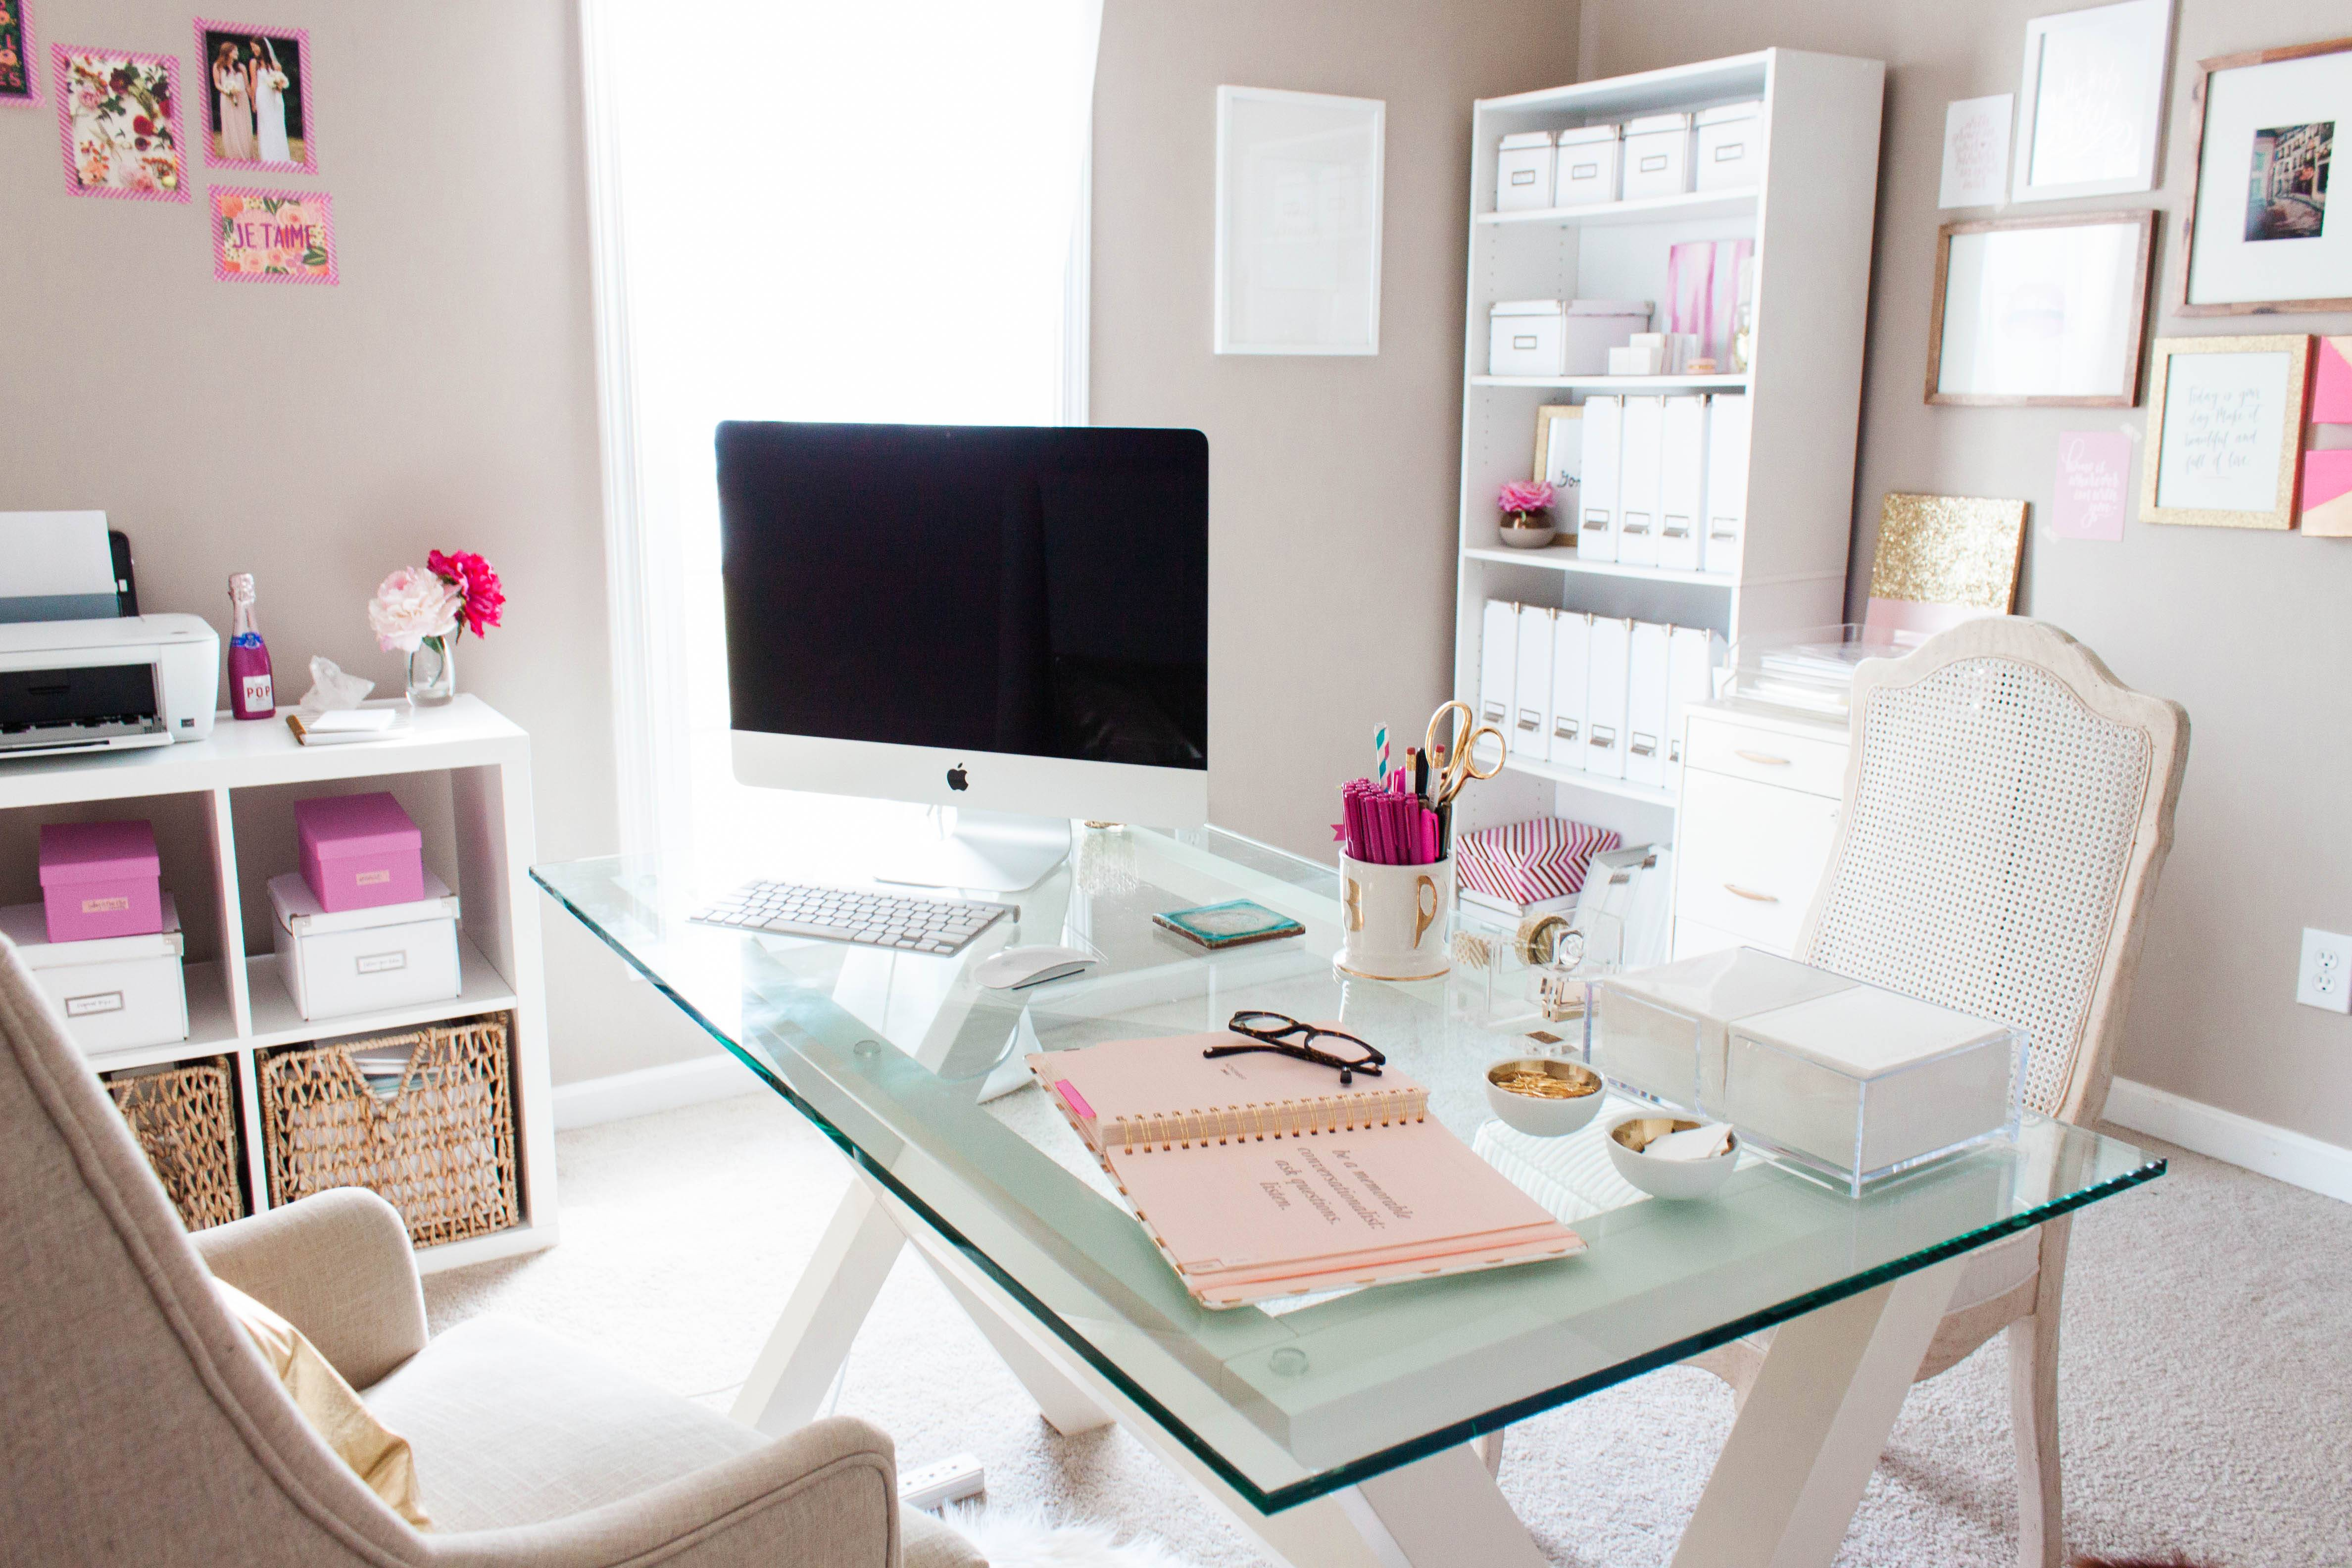 inspirational ideas for home office space home study fice design tags how to create a creative fice from of ideas for home office space